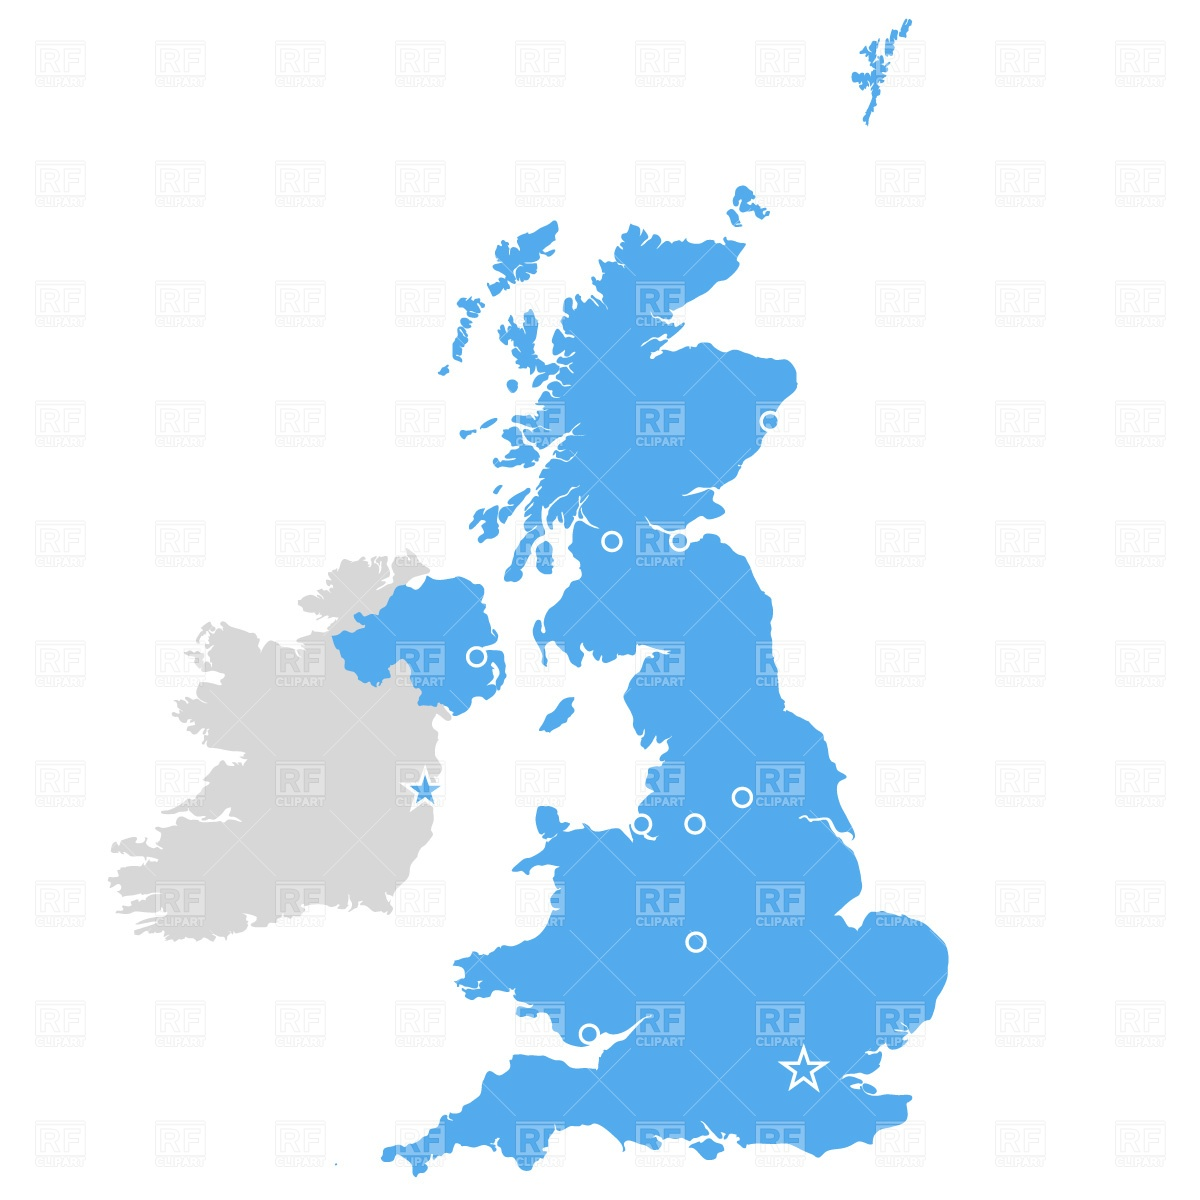 United kingdom map clipart clipart royalty free download England Map Clipart - Clipart Kid clipart royalty free download